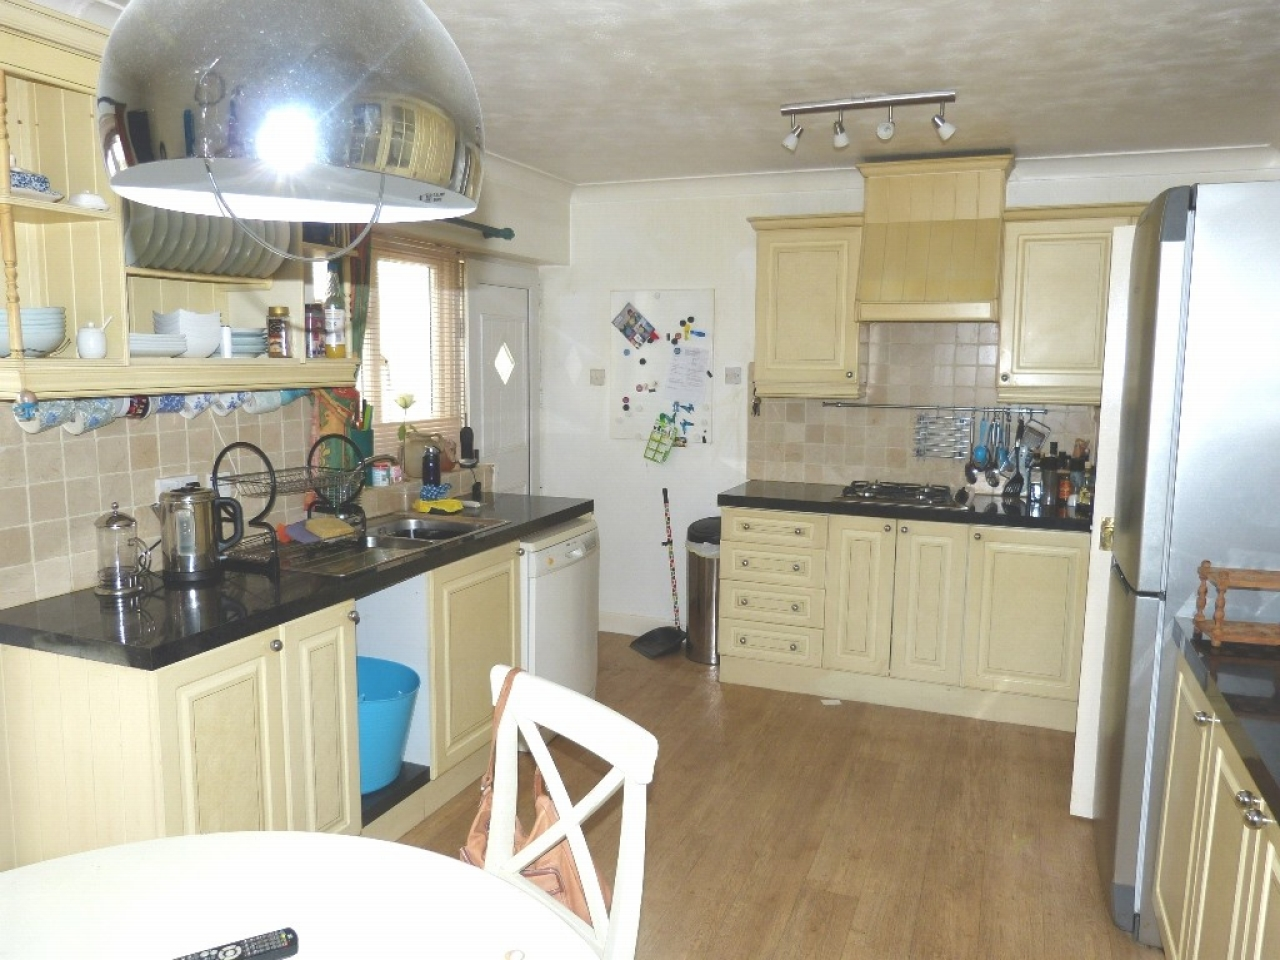 4 bedroom detached bungalow SSTC in Abergele - Photograph 4